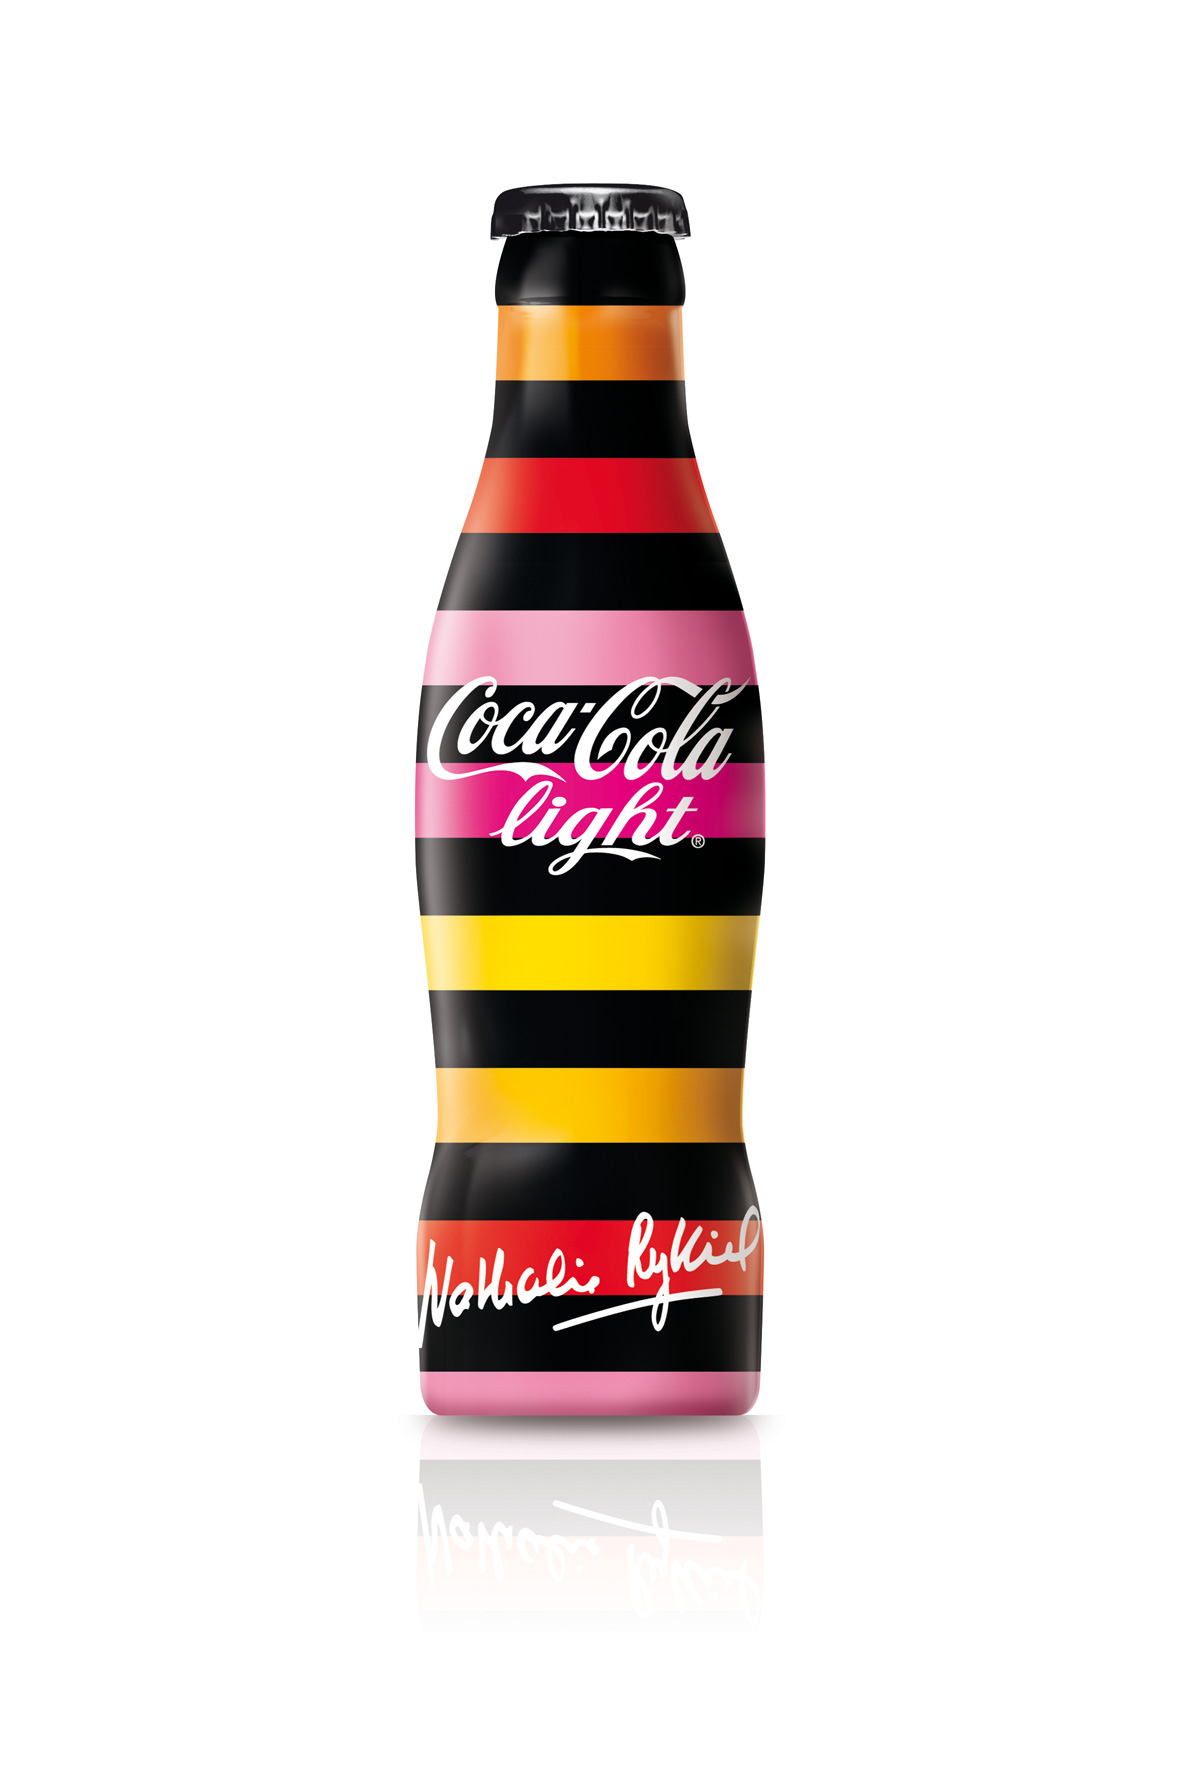 coca cola light des partenariats avec les plus grandes marques de luxe le mag de mate mon sac. Black Bedroom Furniture Sets. Home Design Ideas